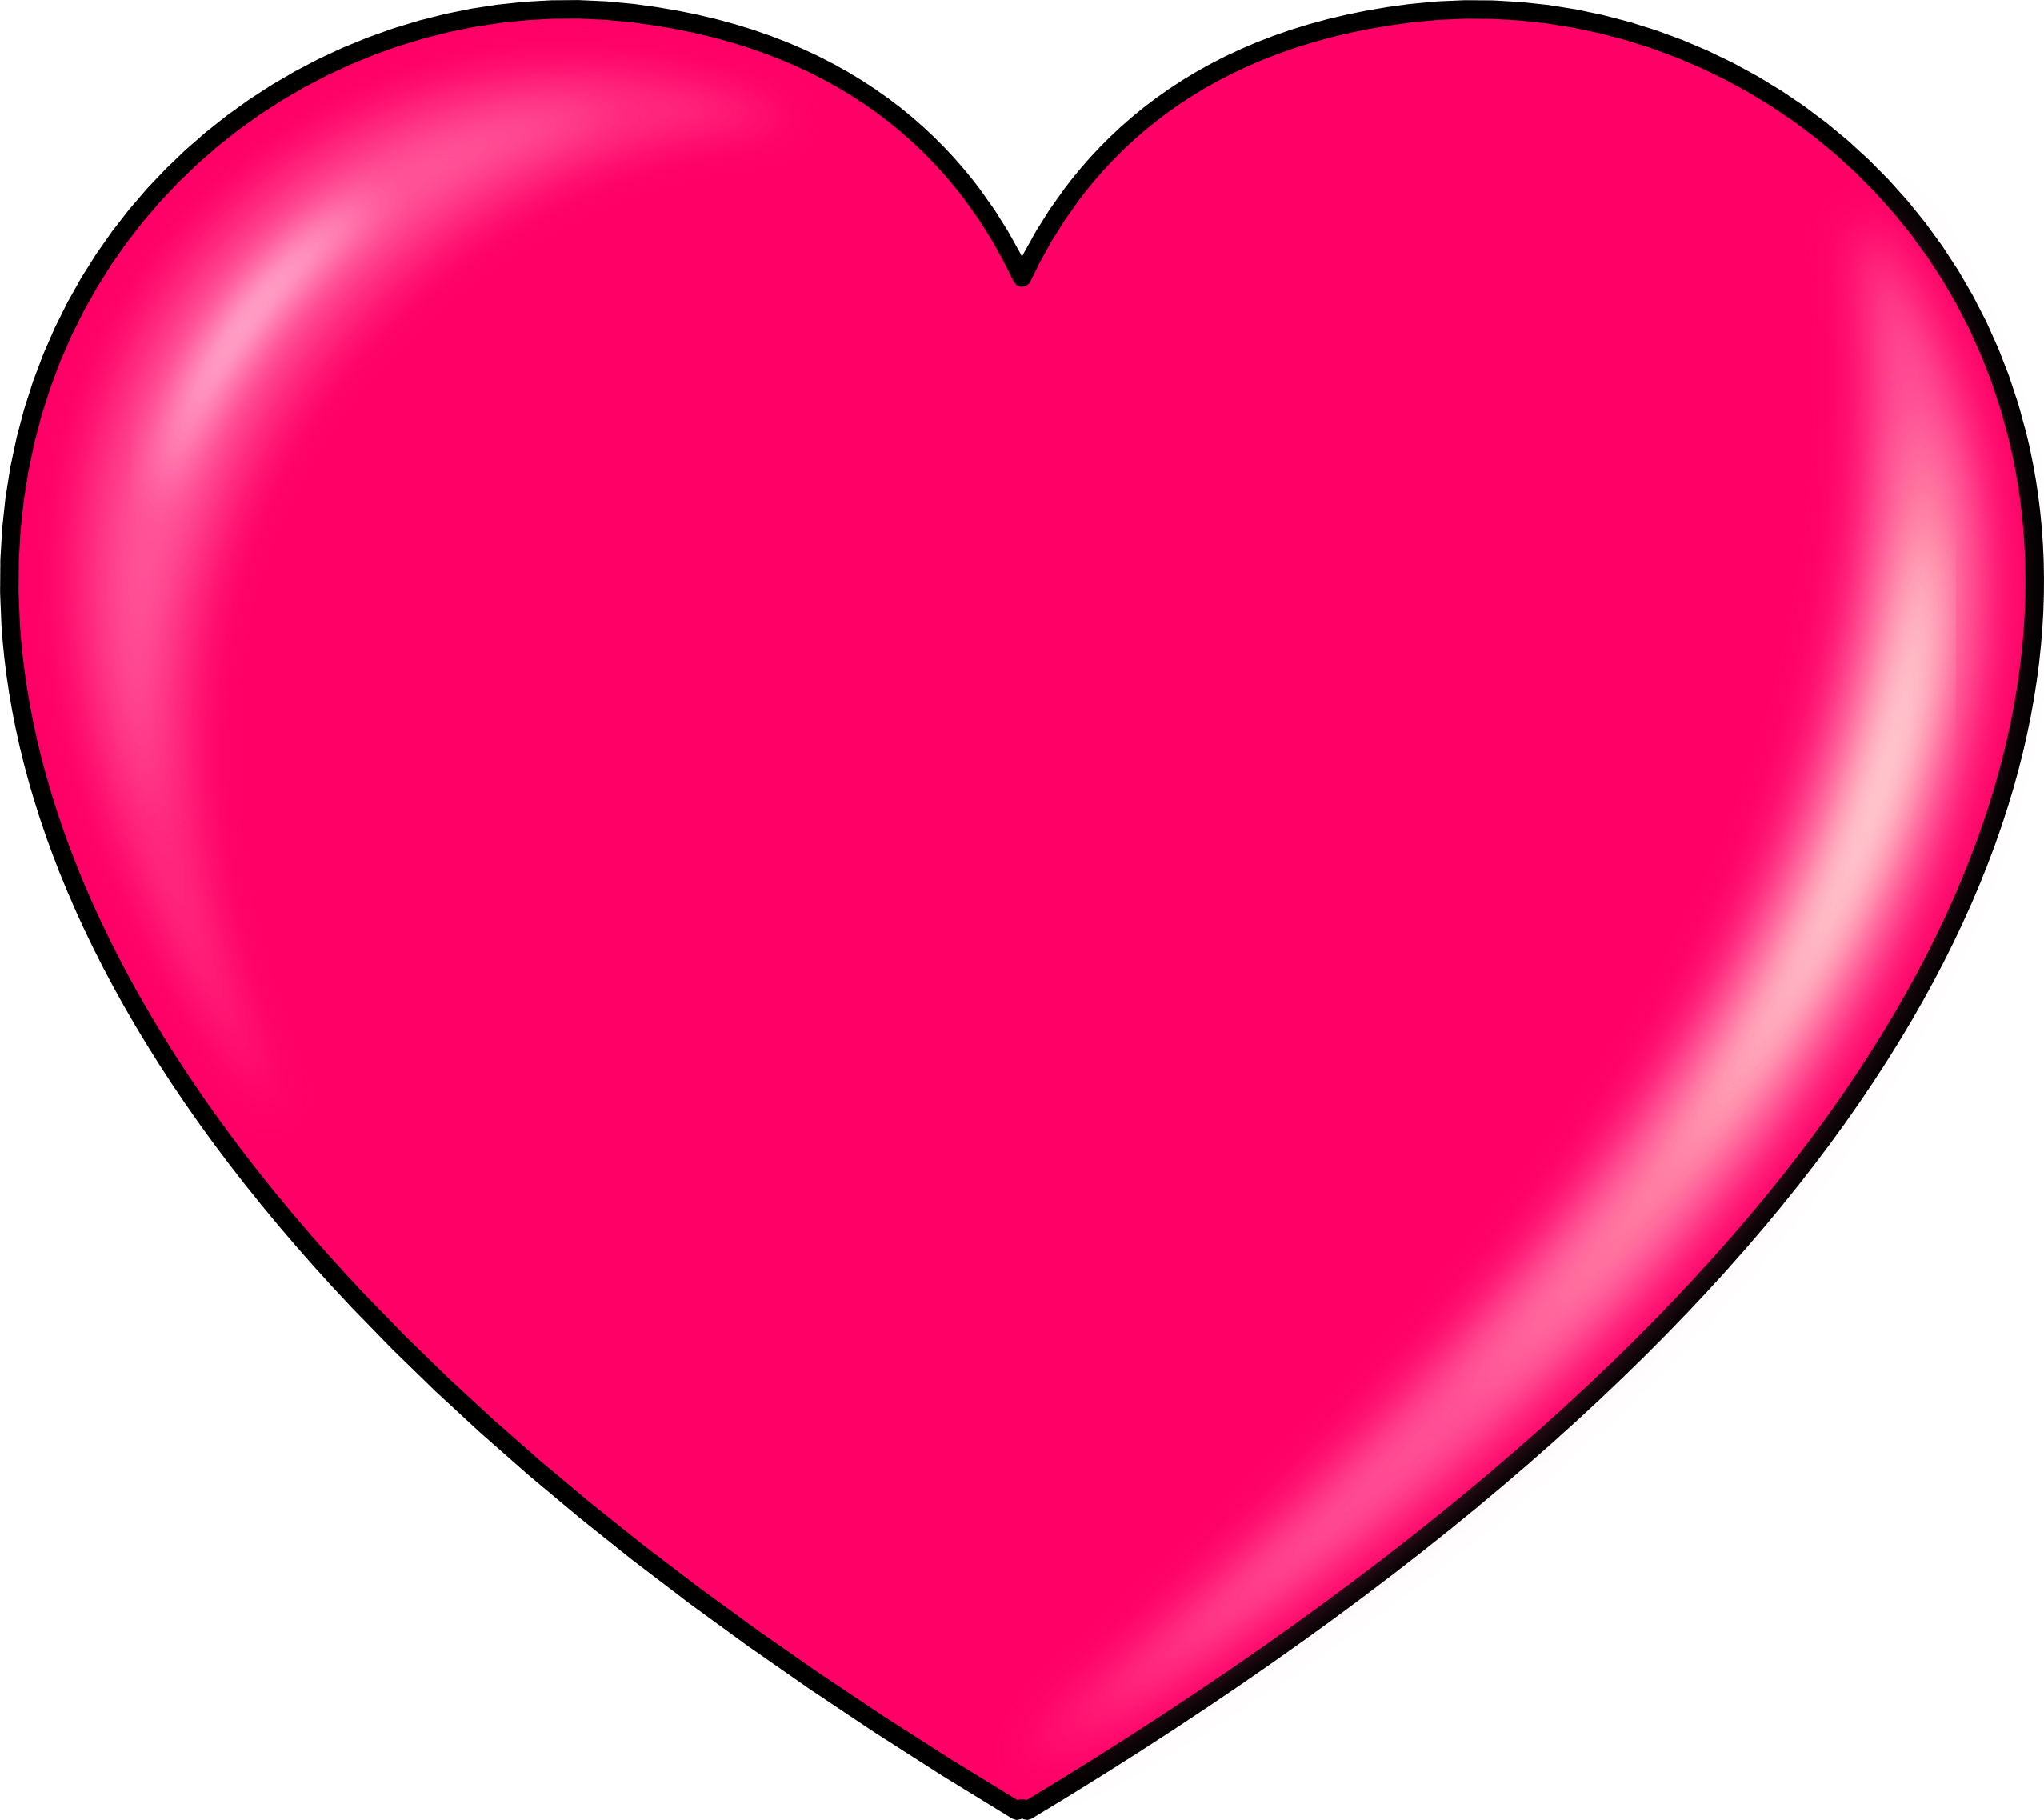 Heart pictures clipart royalty free library Heart Clipart Transparent | Free download best Heart Clipart ... royalty free library